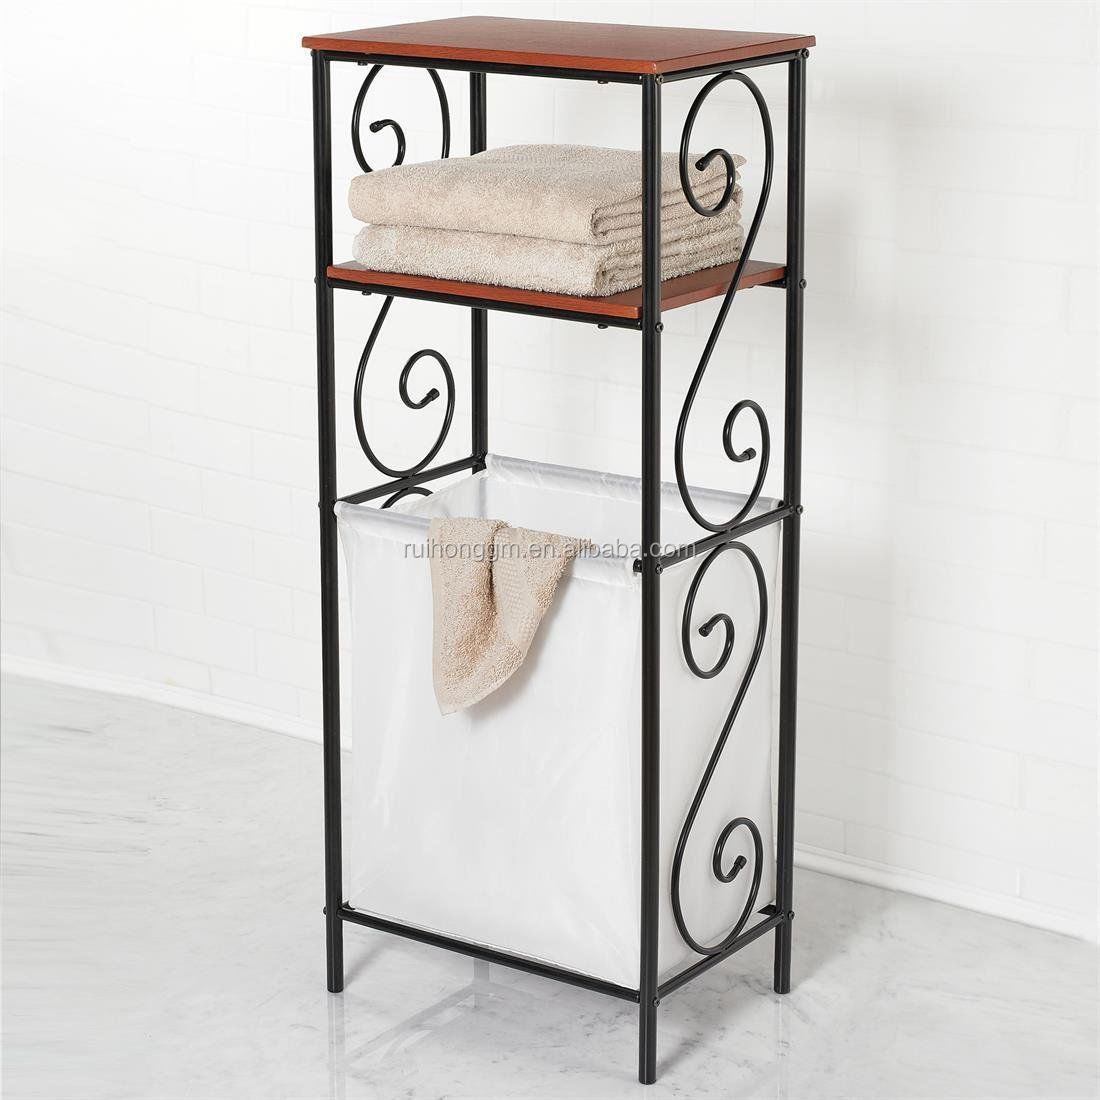 Laundry Basket With Shelves 3 Tiers Metal Bathroom Scroll Storage Organizer Laundry